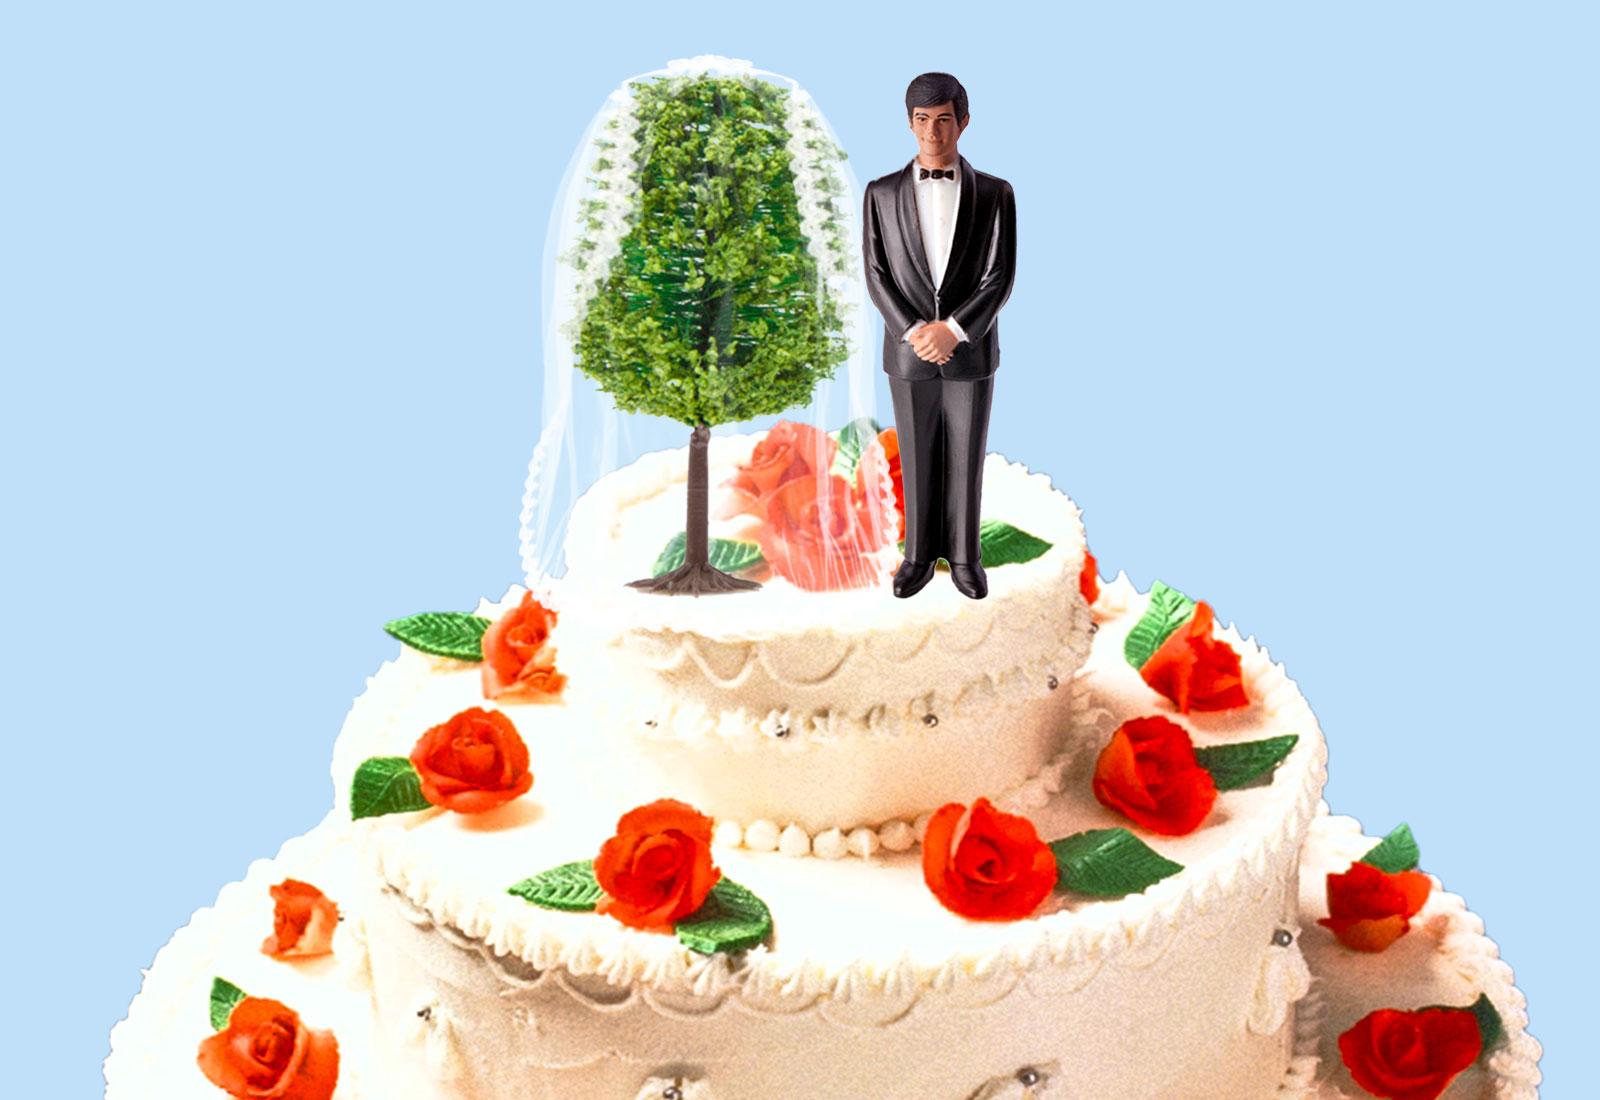 Wedding cake with a groom topper and a tree wearing a bridal veil